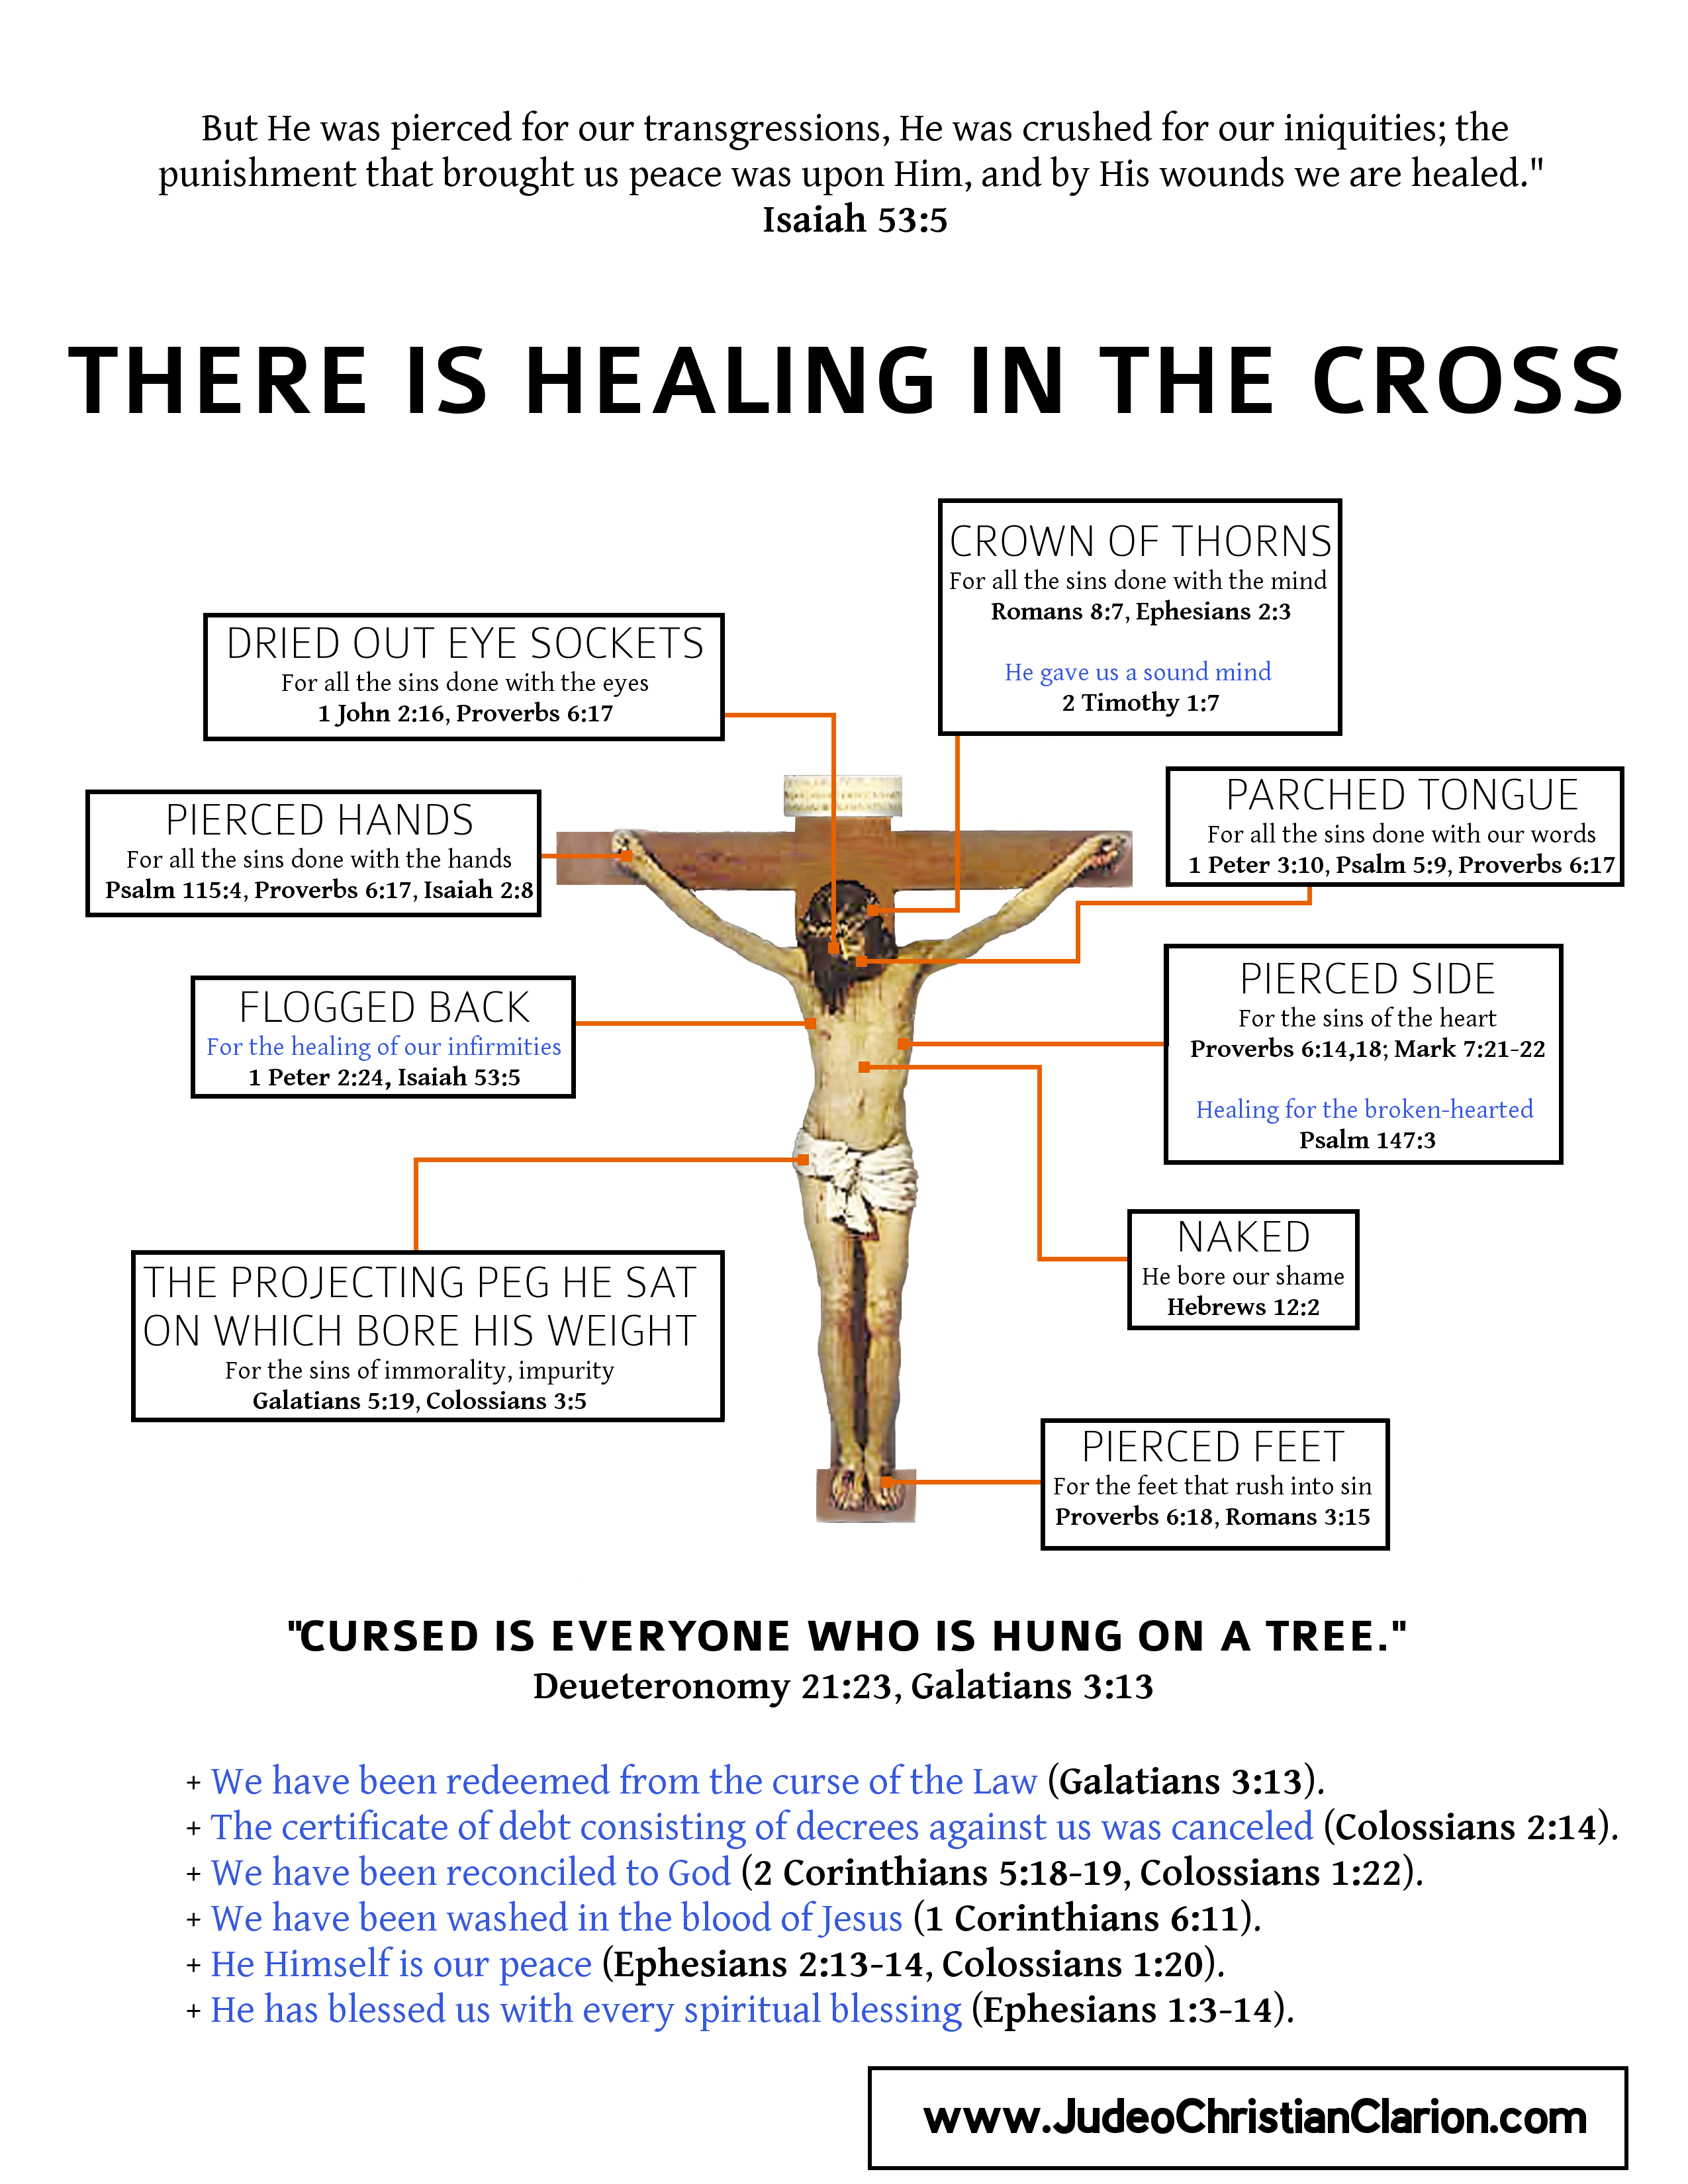 Judeo christianity christianity spiritual and bible judeo christian clarion formerly the jerusalem christian center is excited to offer you spiritual insight about the jewish jesus and judeo christian biocorpaavc Images